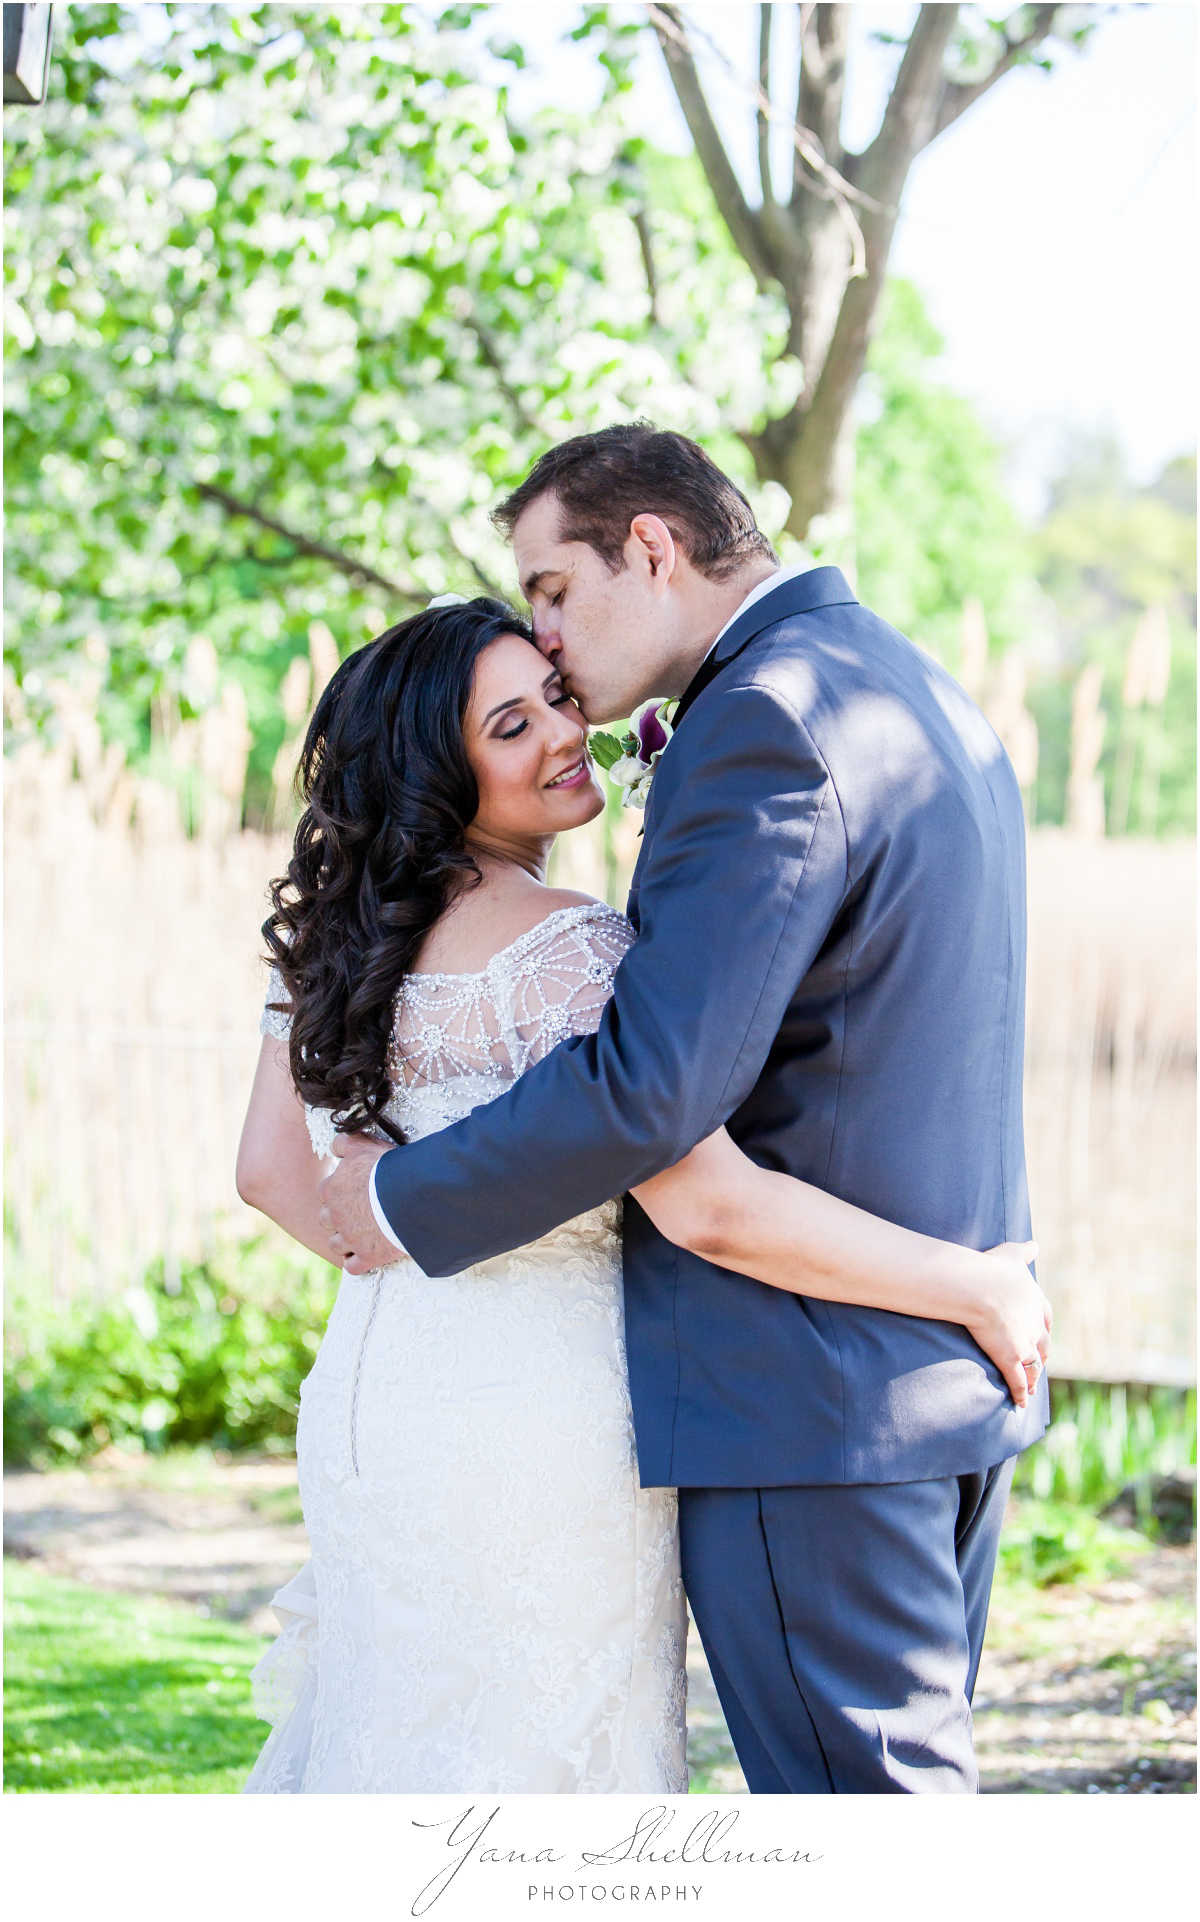 The Swan Club Wedding Photos by LBI Wedding Photographers - Nimita+Joe Wedding Photos